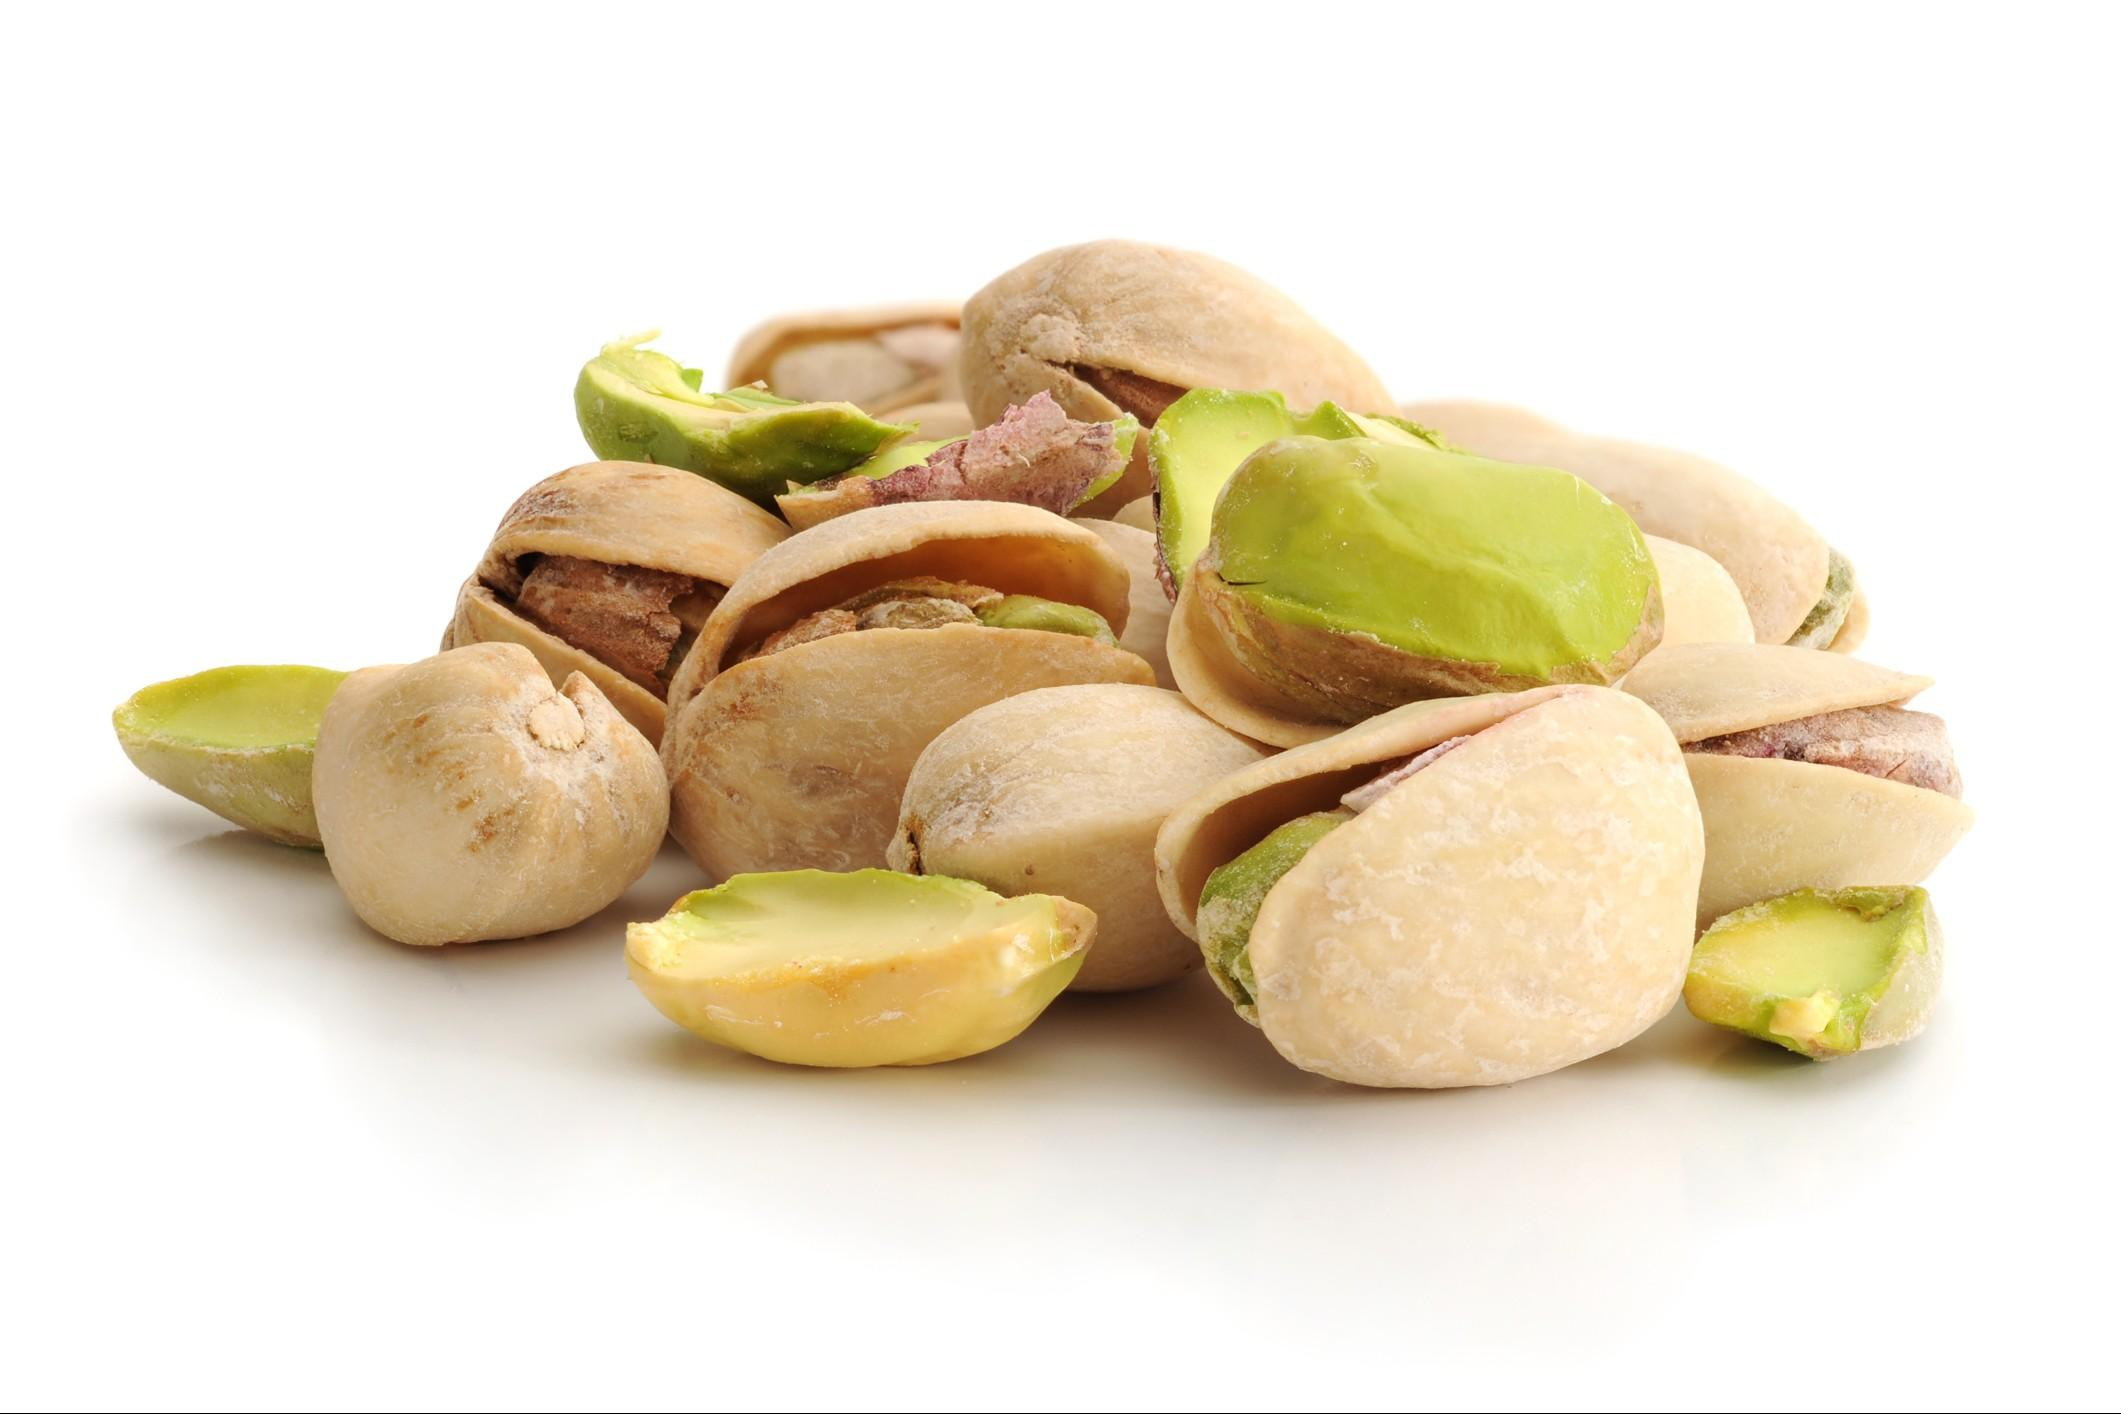 Pistachio Nutrition is Packed With Minerals